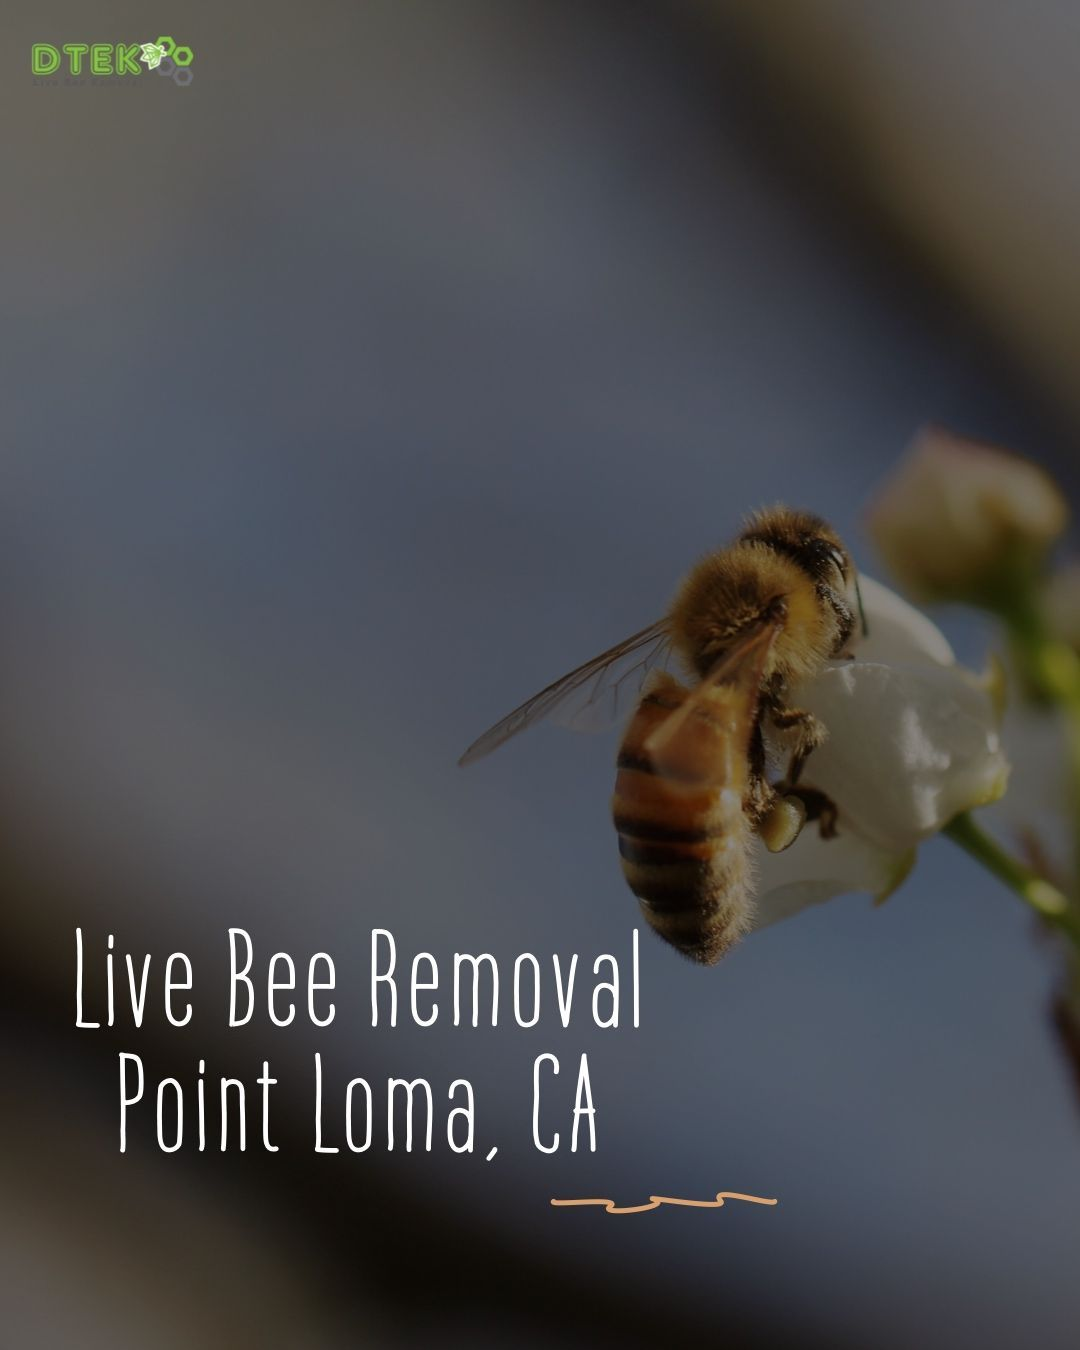 If You Are In Need Of Bee Removal In Point Loma Look No Further Than D Tek Live Bee Removal We Are Experts In The Safe Live Remov In 2020 Bee Removal